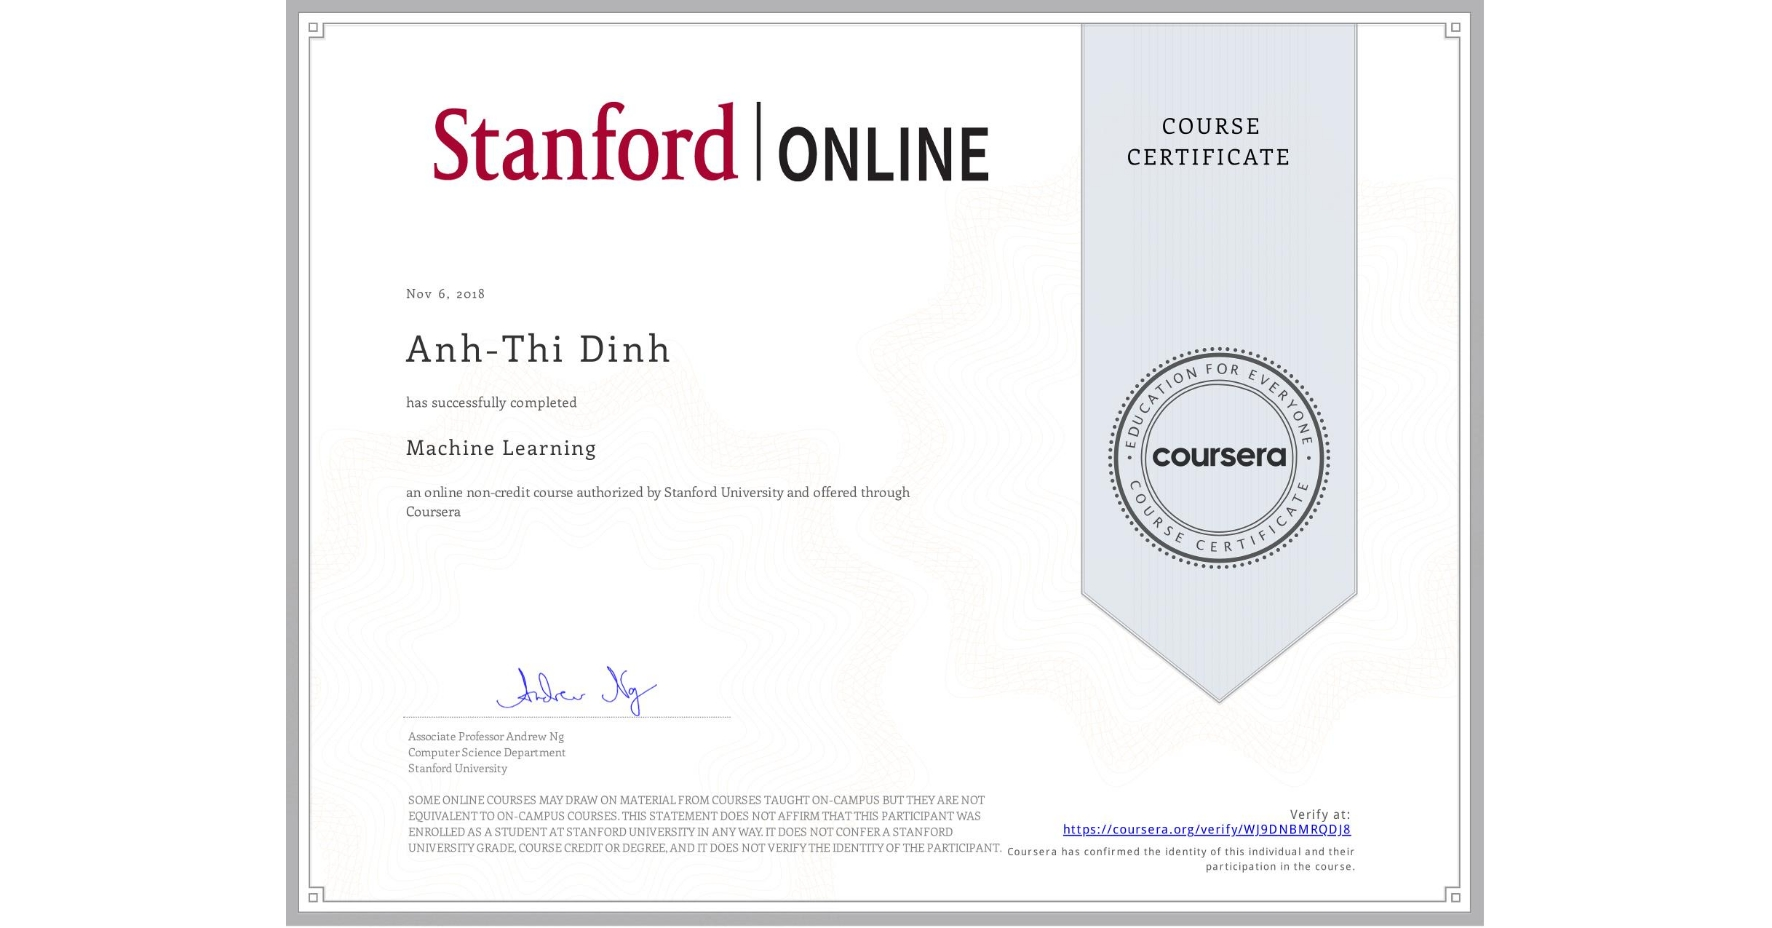 View certificate for Anh-Thi Dinh, Machine Learning, an online non-credit course authorized by Stanford University and offered through Coursera